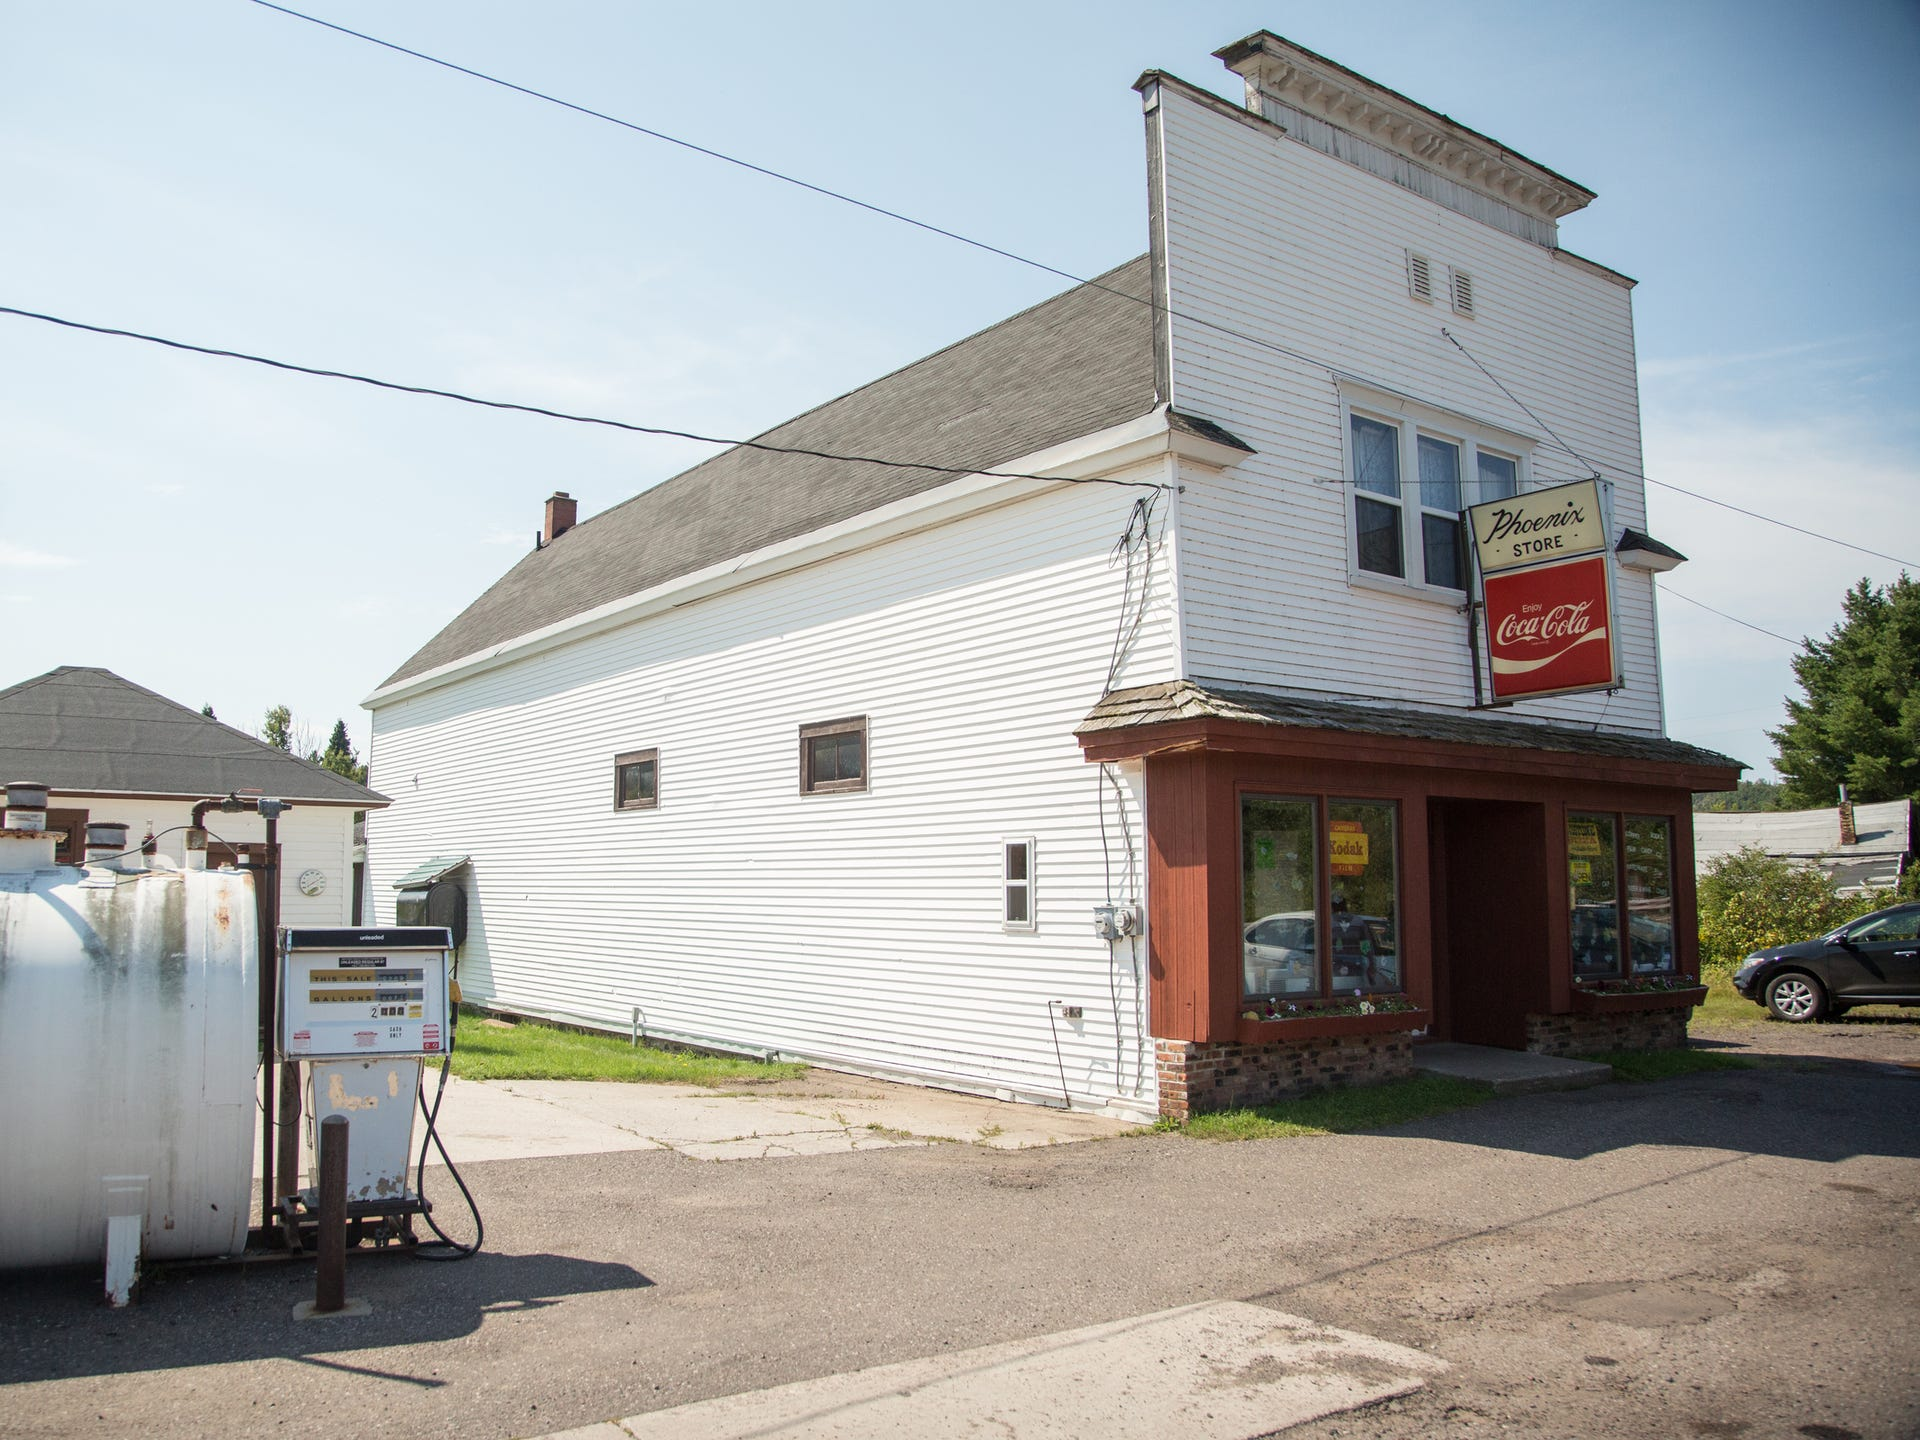 The Phoenix Store, built in 1873, is the lone remaining